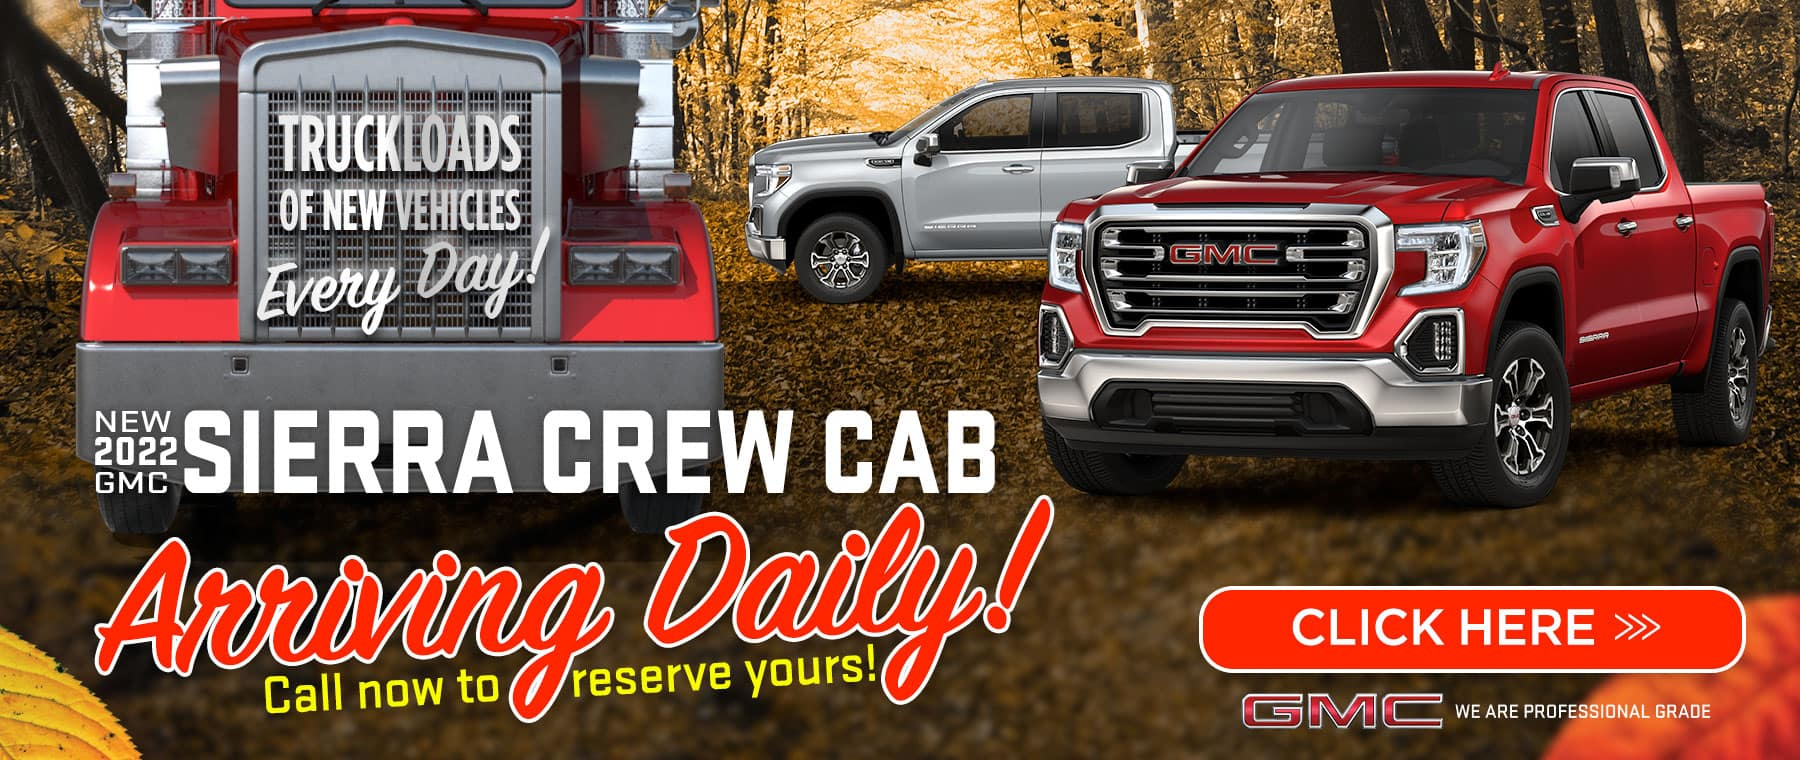 New 2022 Sierra Crew Cab - Arriving Daily